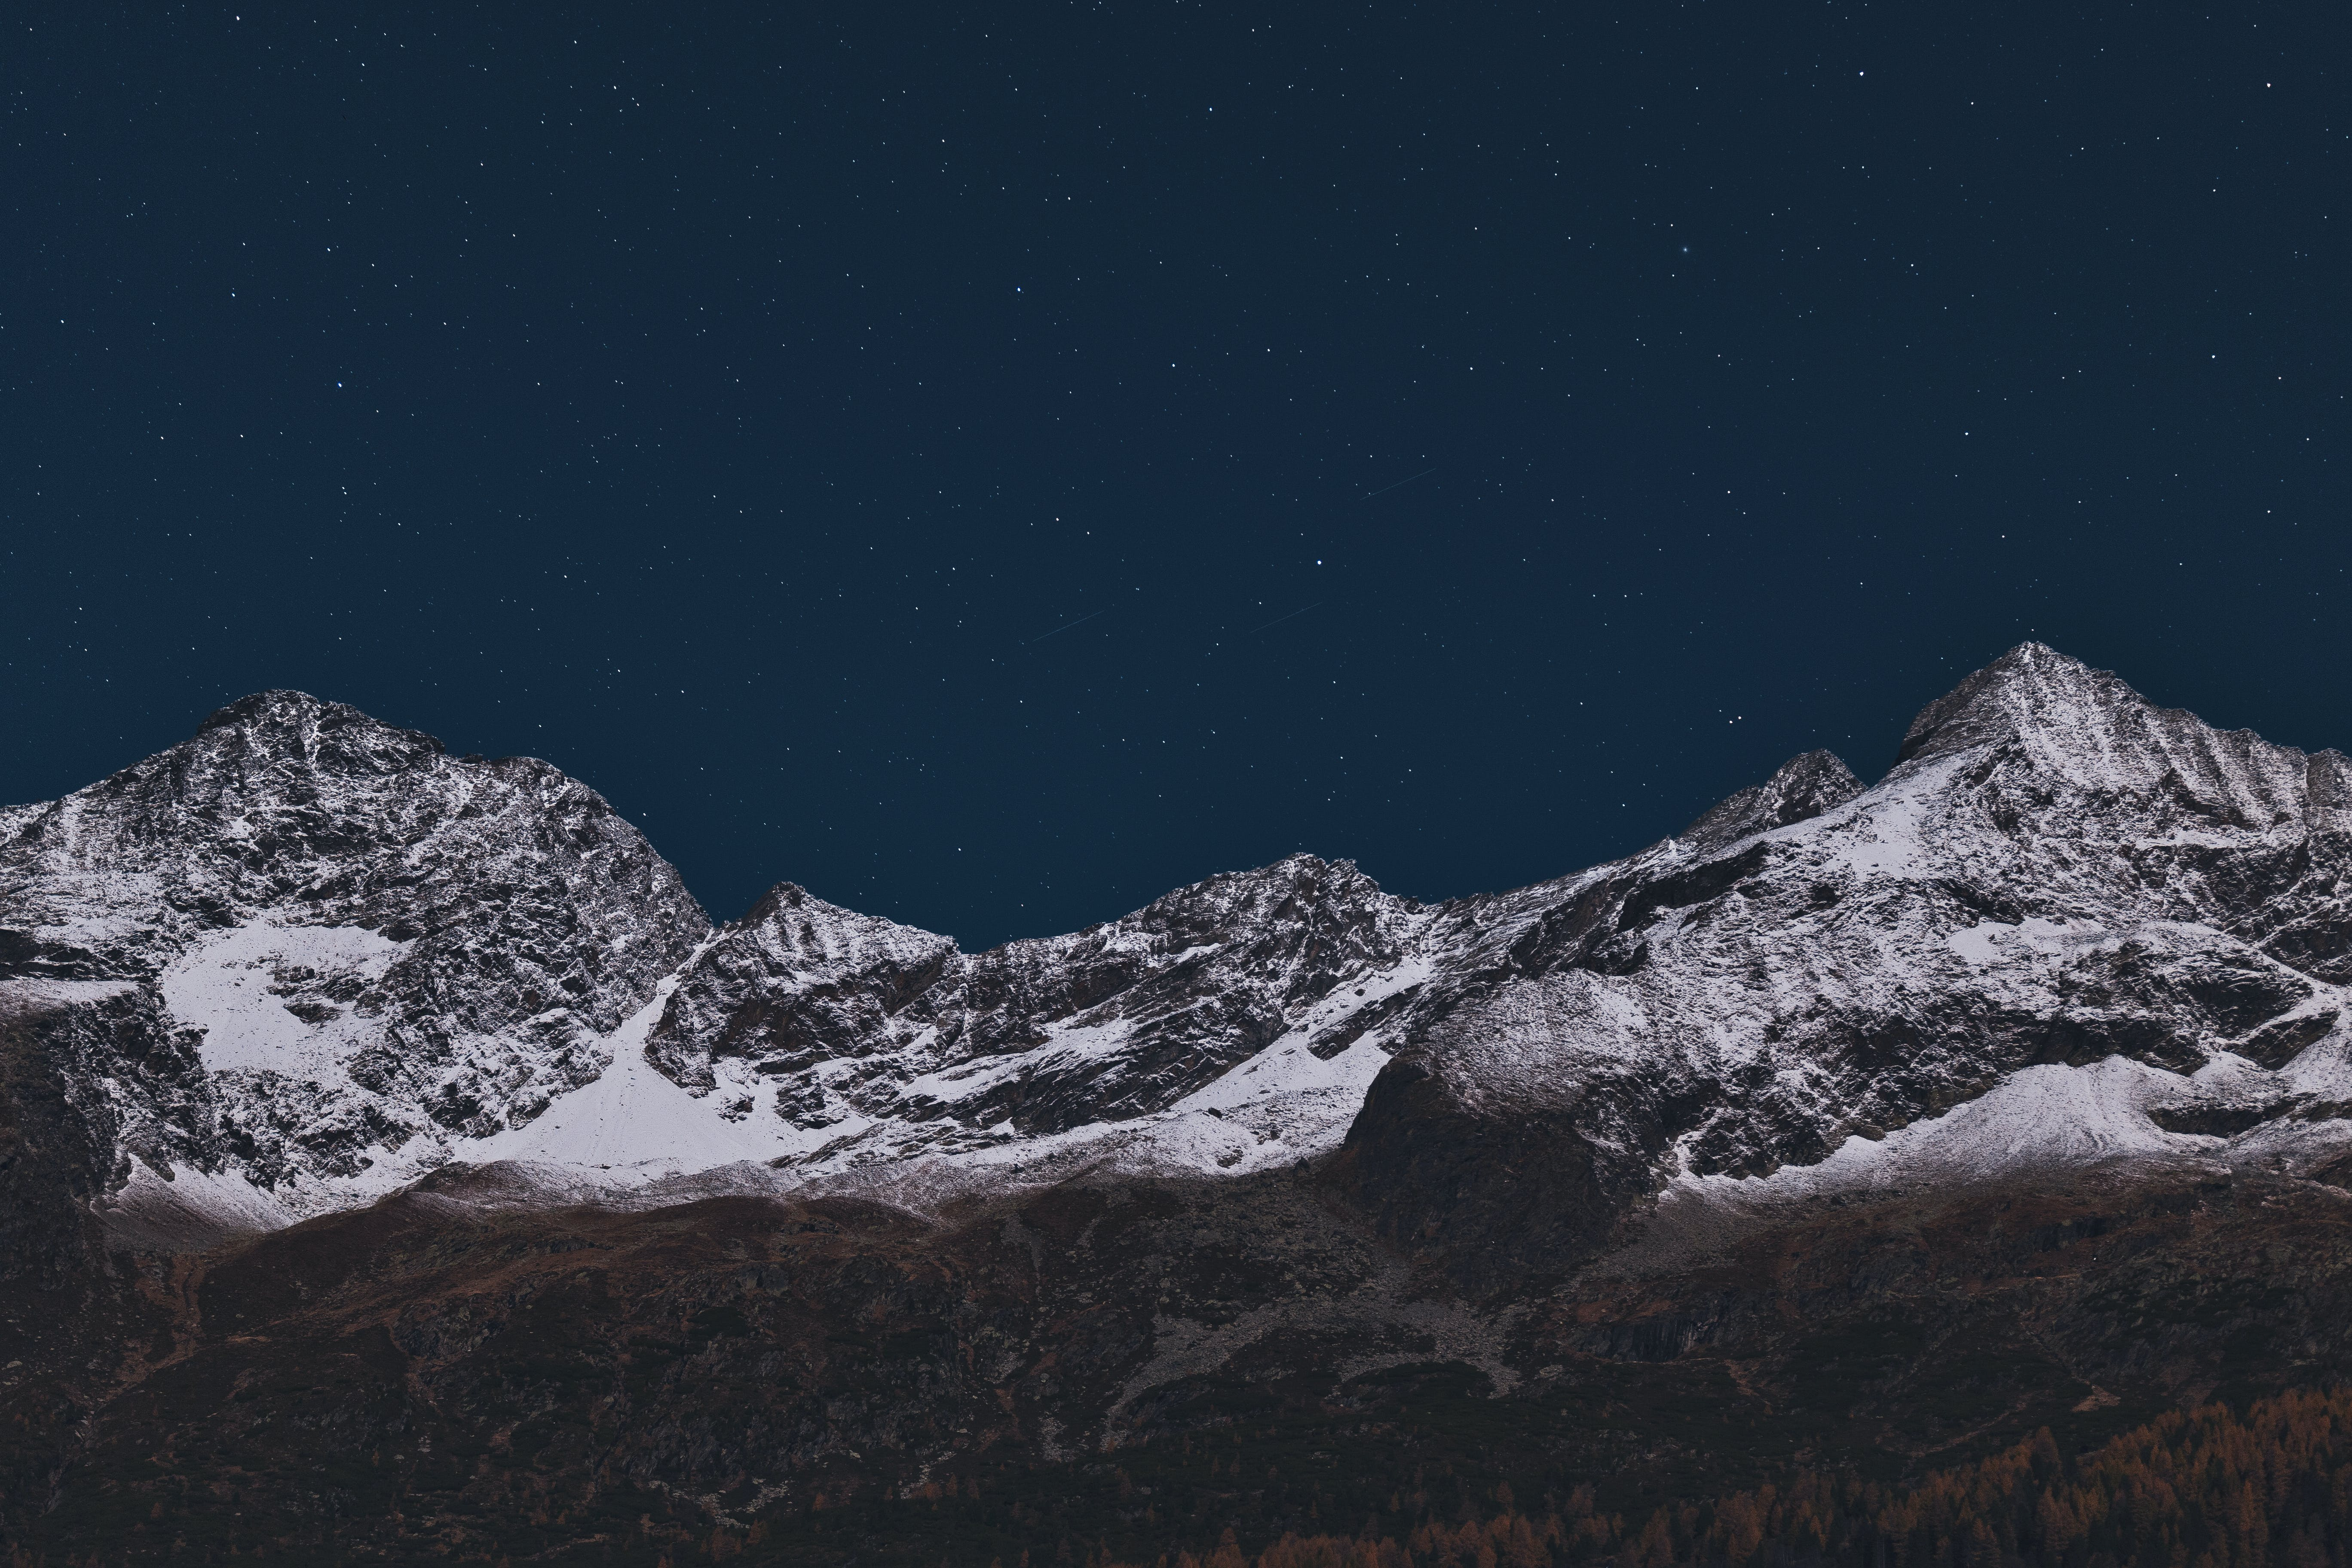 Mountain Covered With Snow During Nighttime